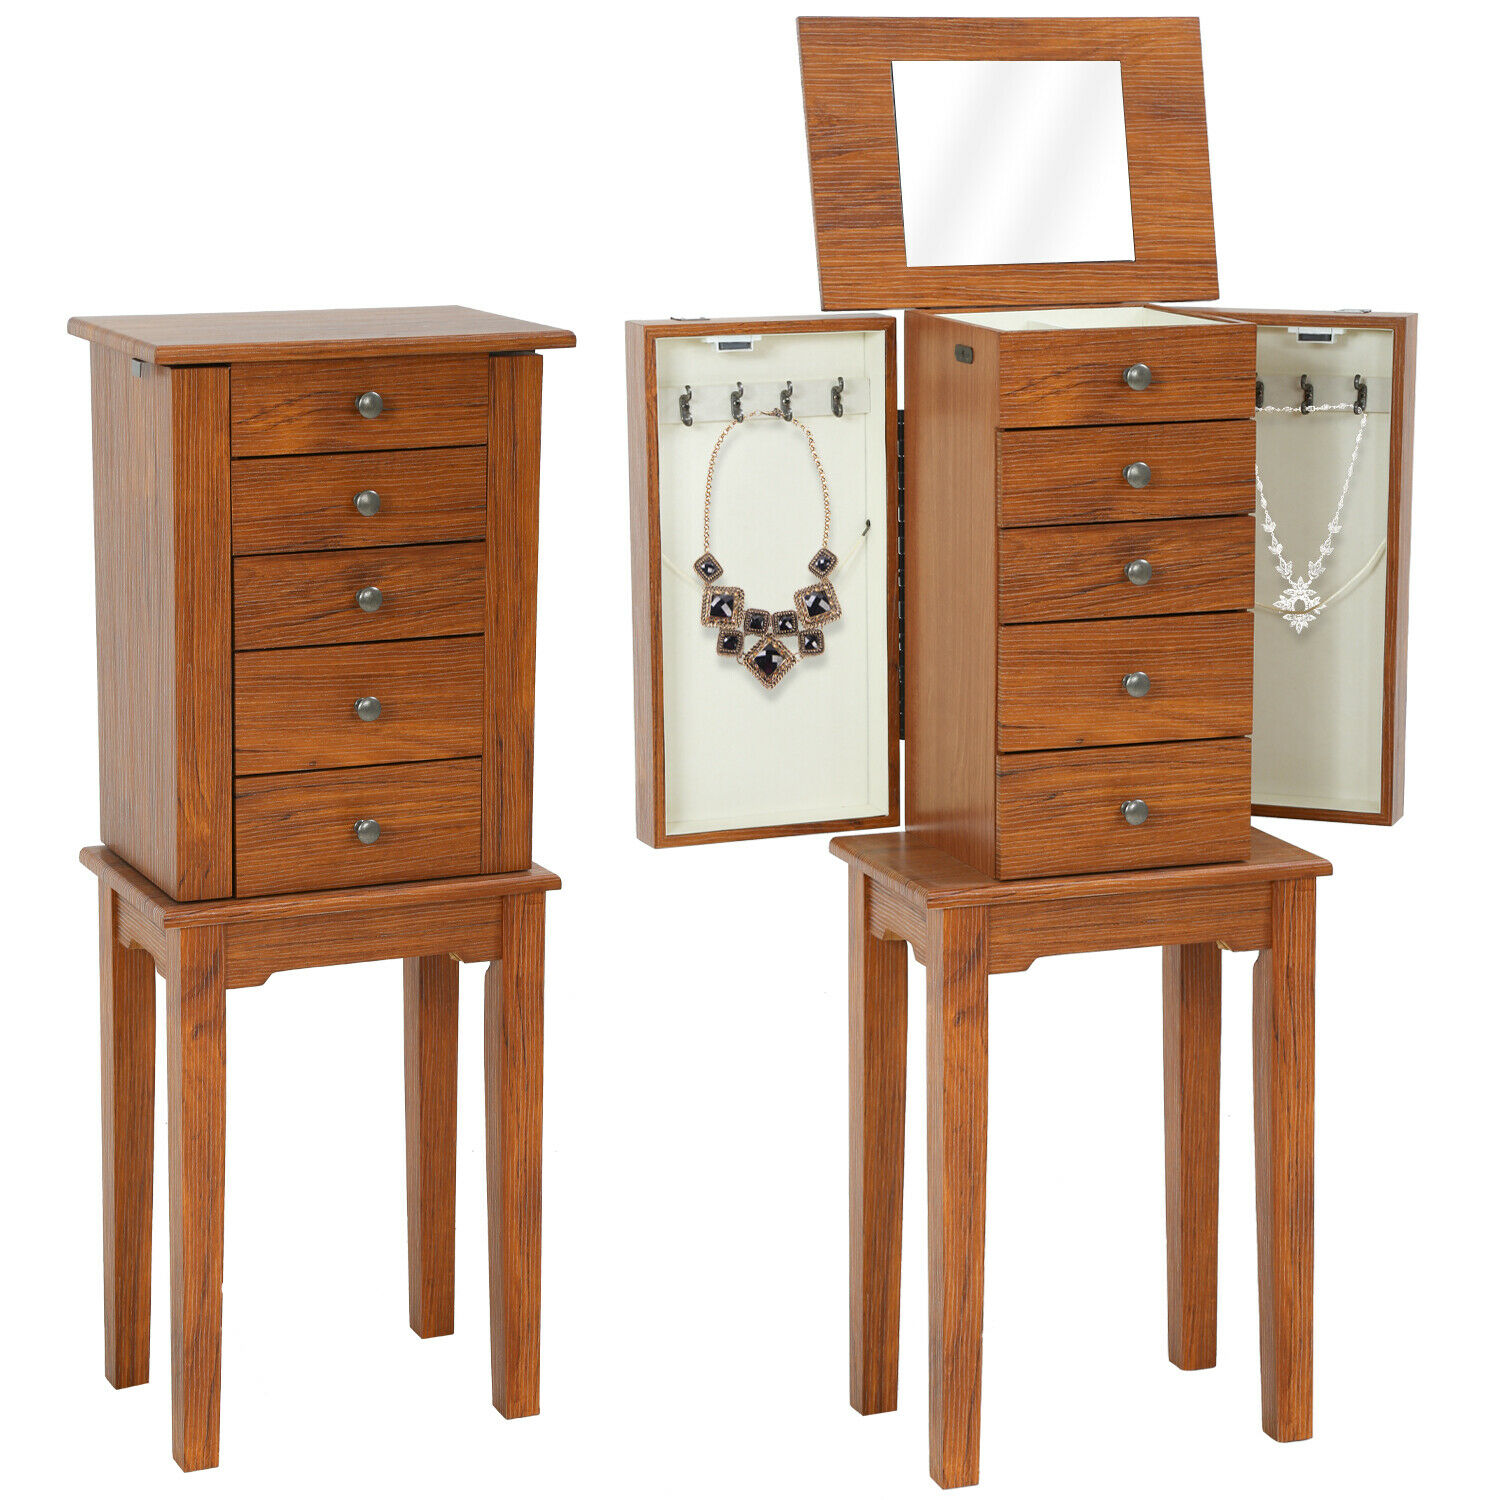 Standing Jewelry Cabinet Armoire 5 Drawers 2 Side Doors And 8 Necklace Hooks Jewelry & Watches